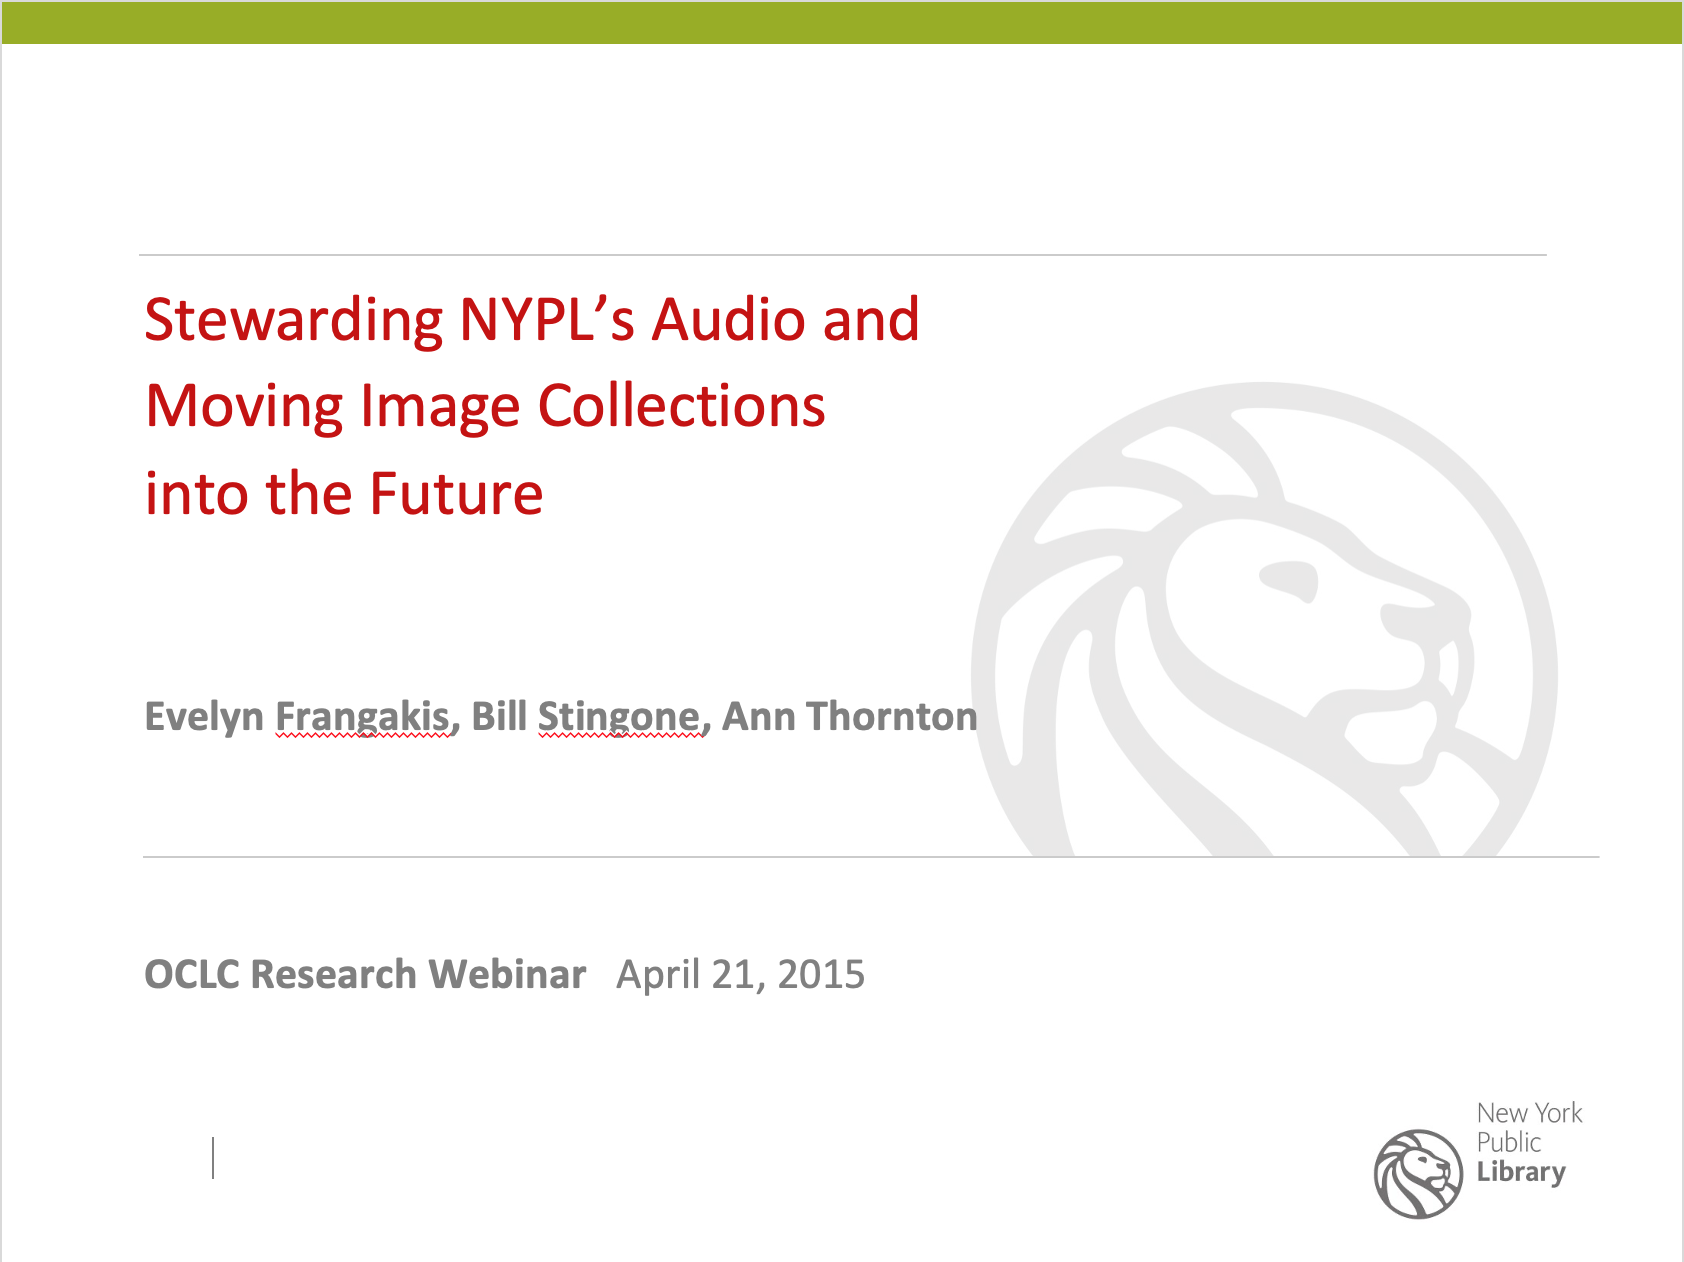 Stewarding New York Public Library's Audio and Moving Image Research Collections into the Future